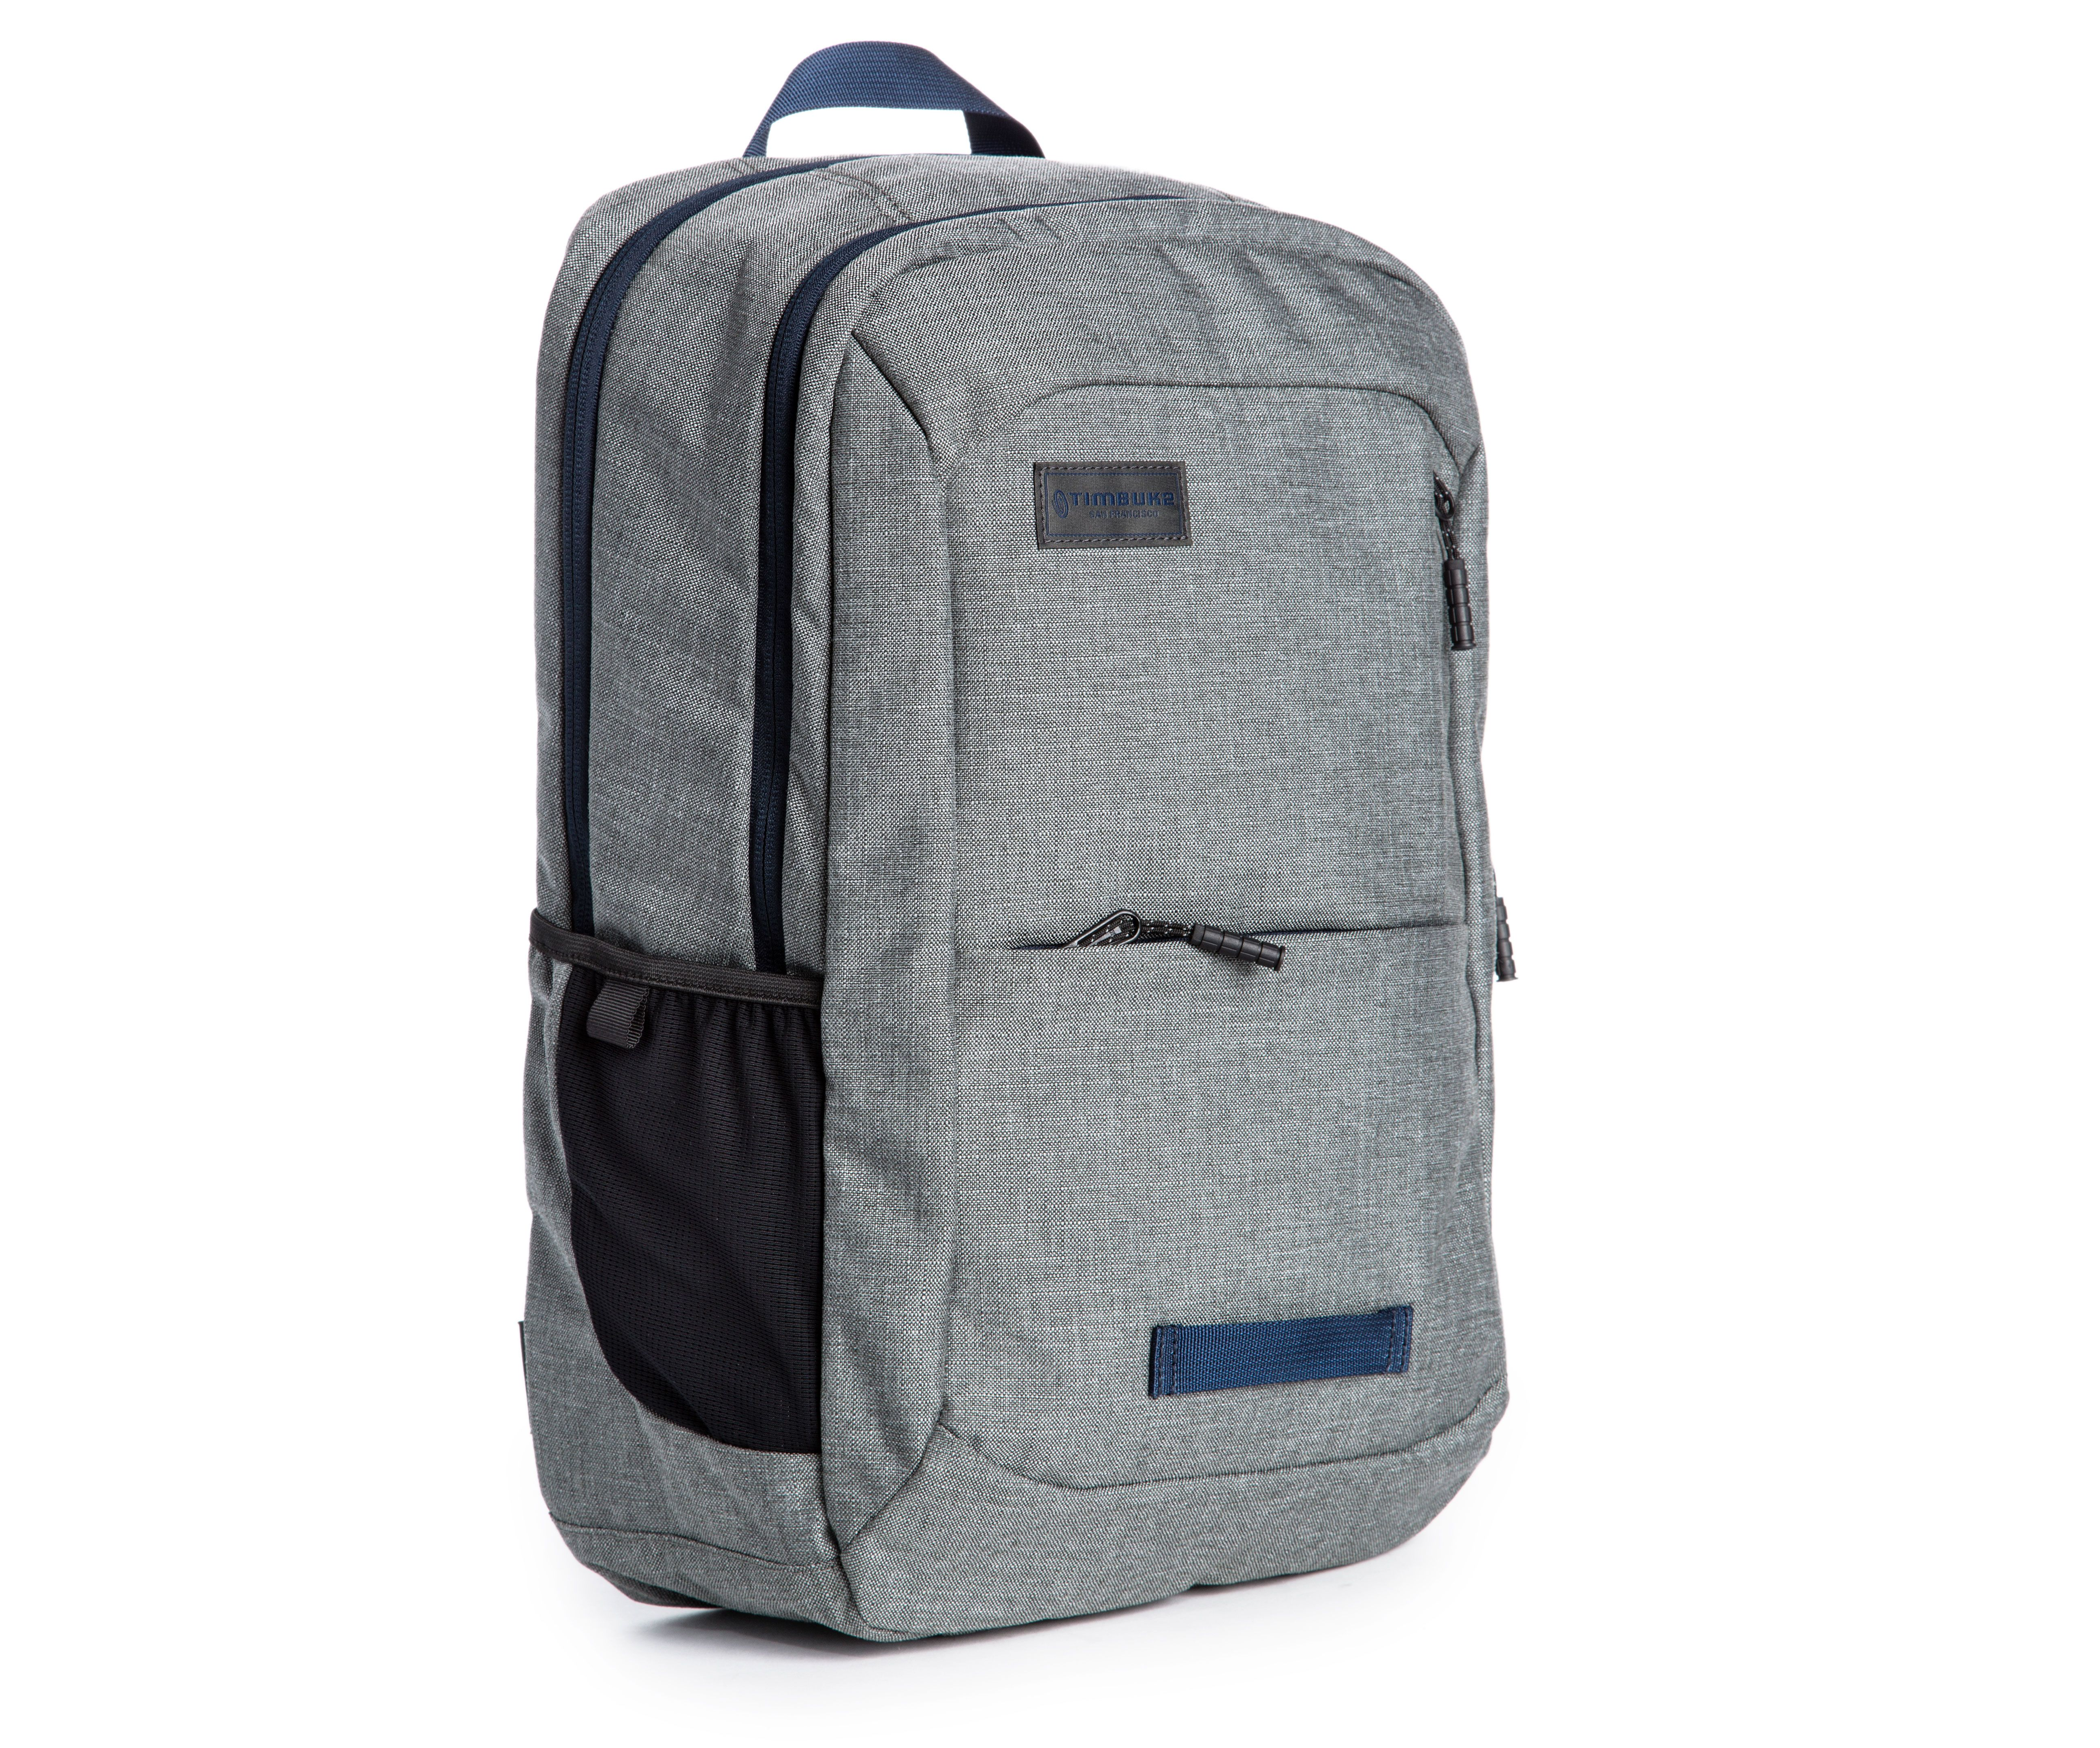 Backpack With Laptop Protection - CEAGESP 3ed4ed393ecd